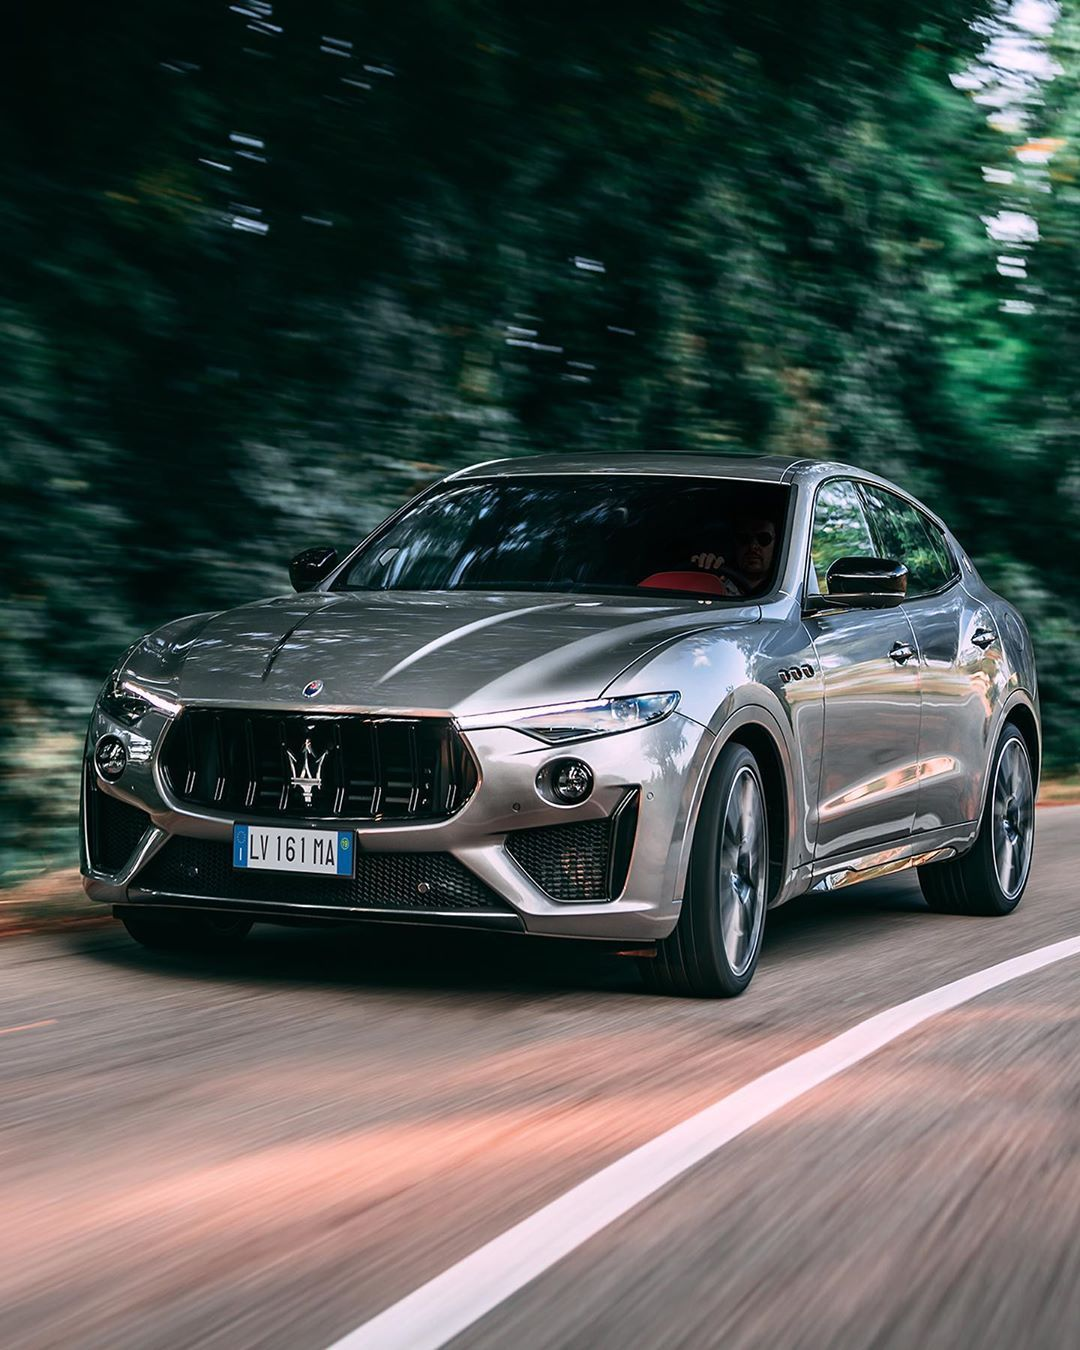 """Maserati on Instagram: """"A pleasure that starts with the eyes and intensifies with the ears. #MaseratiLevanteTrofeo"""""""